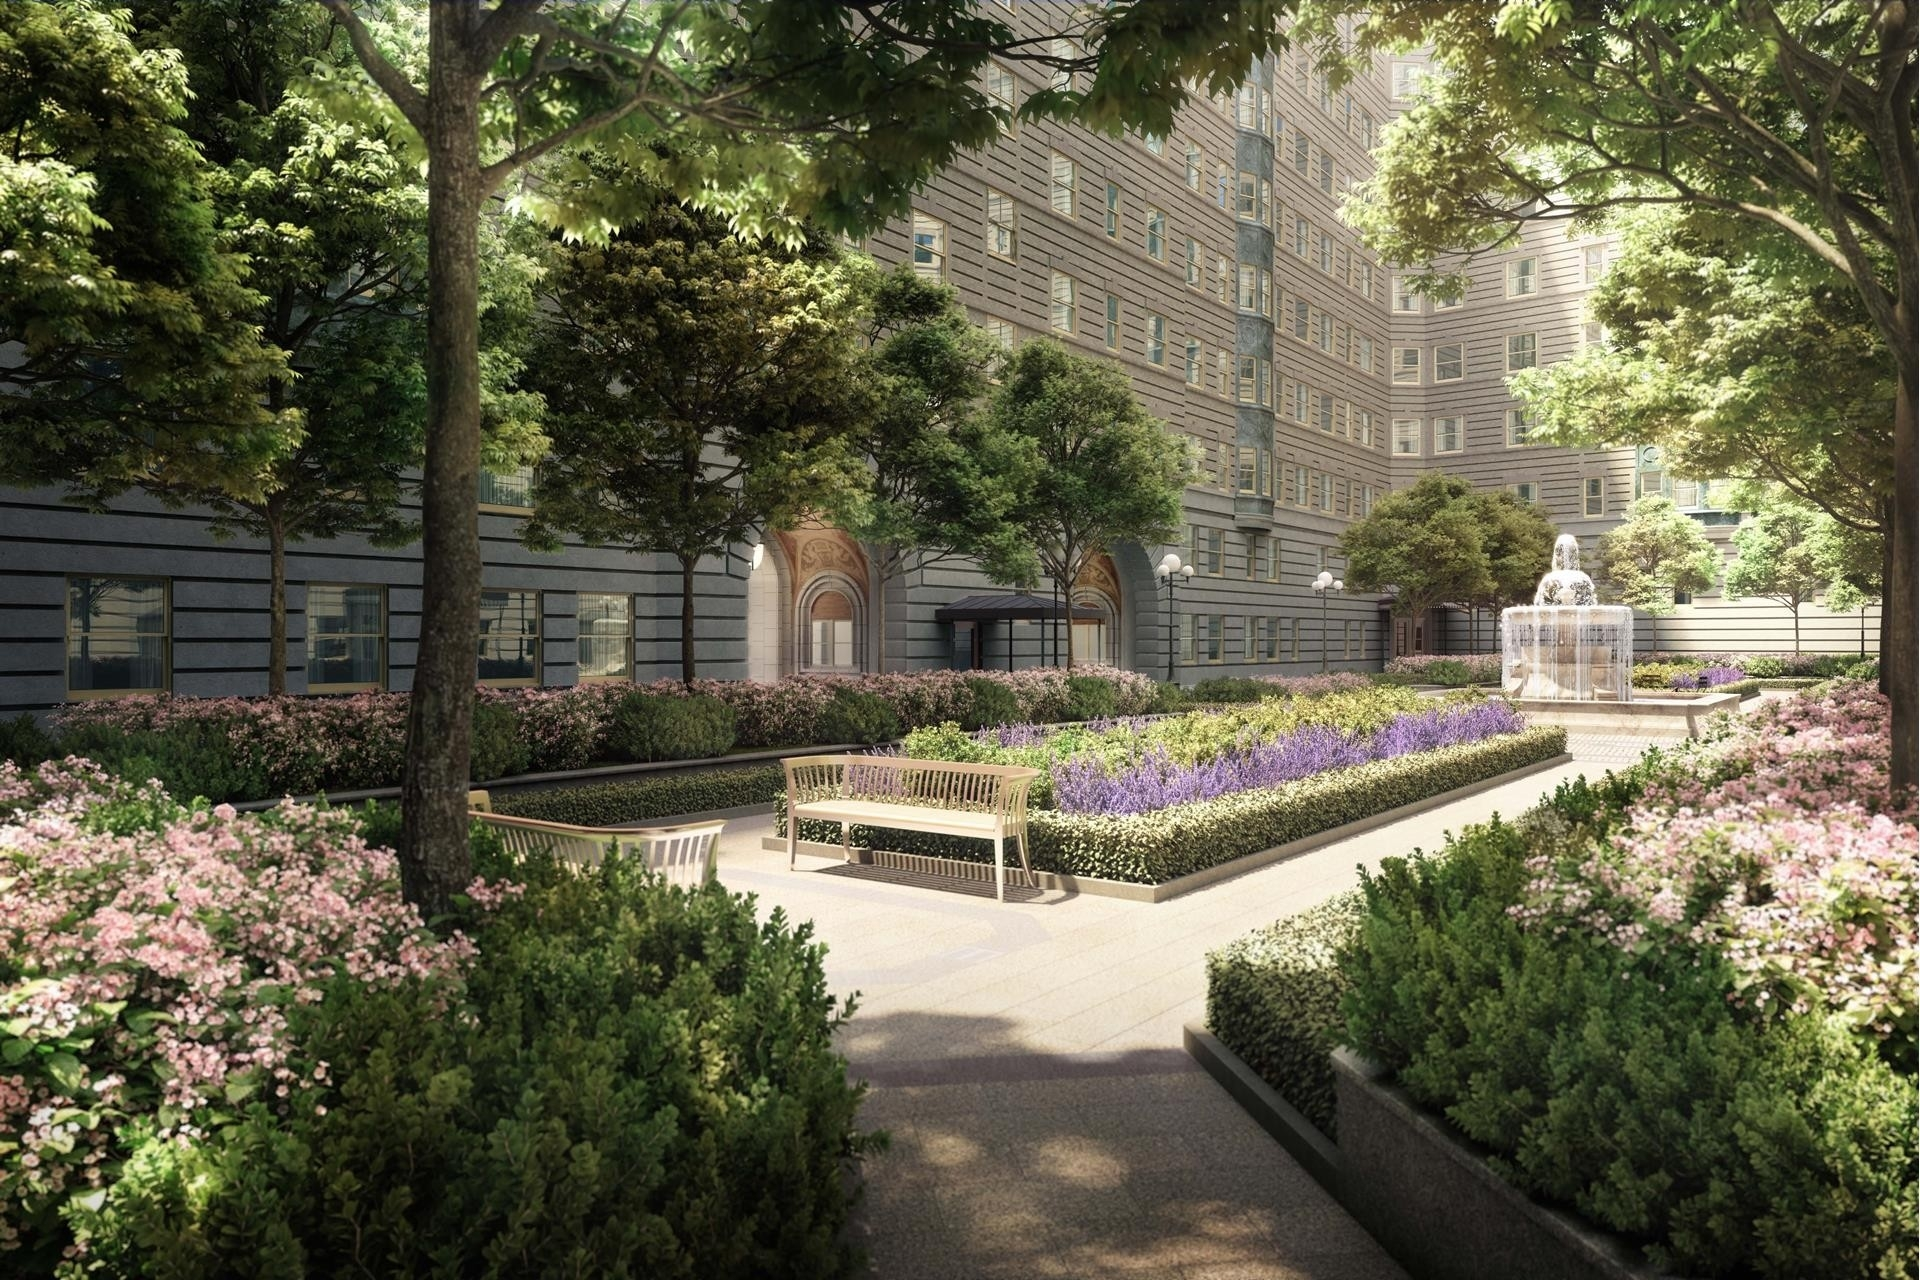 4. Condominiums for Sale at The Belnord, 225 West 86th St, 901 Upper West Side, New York, NY 10024